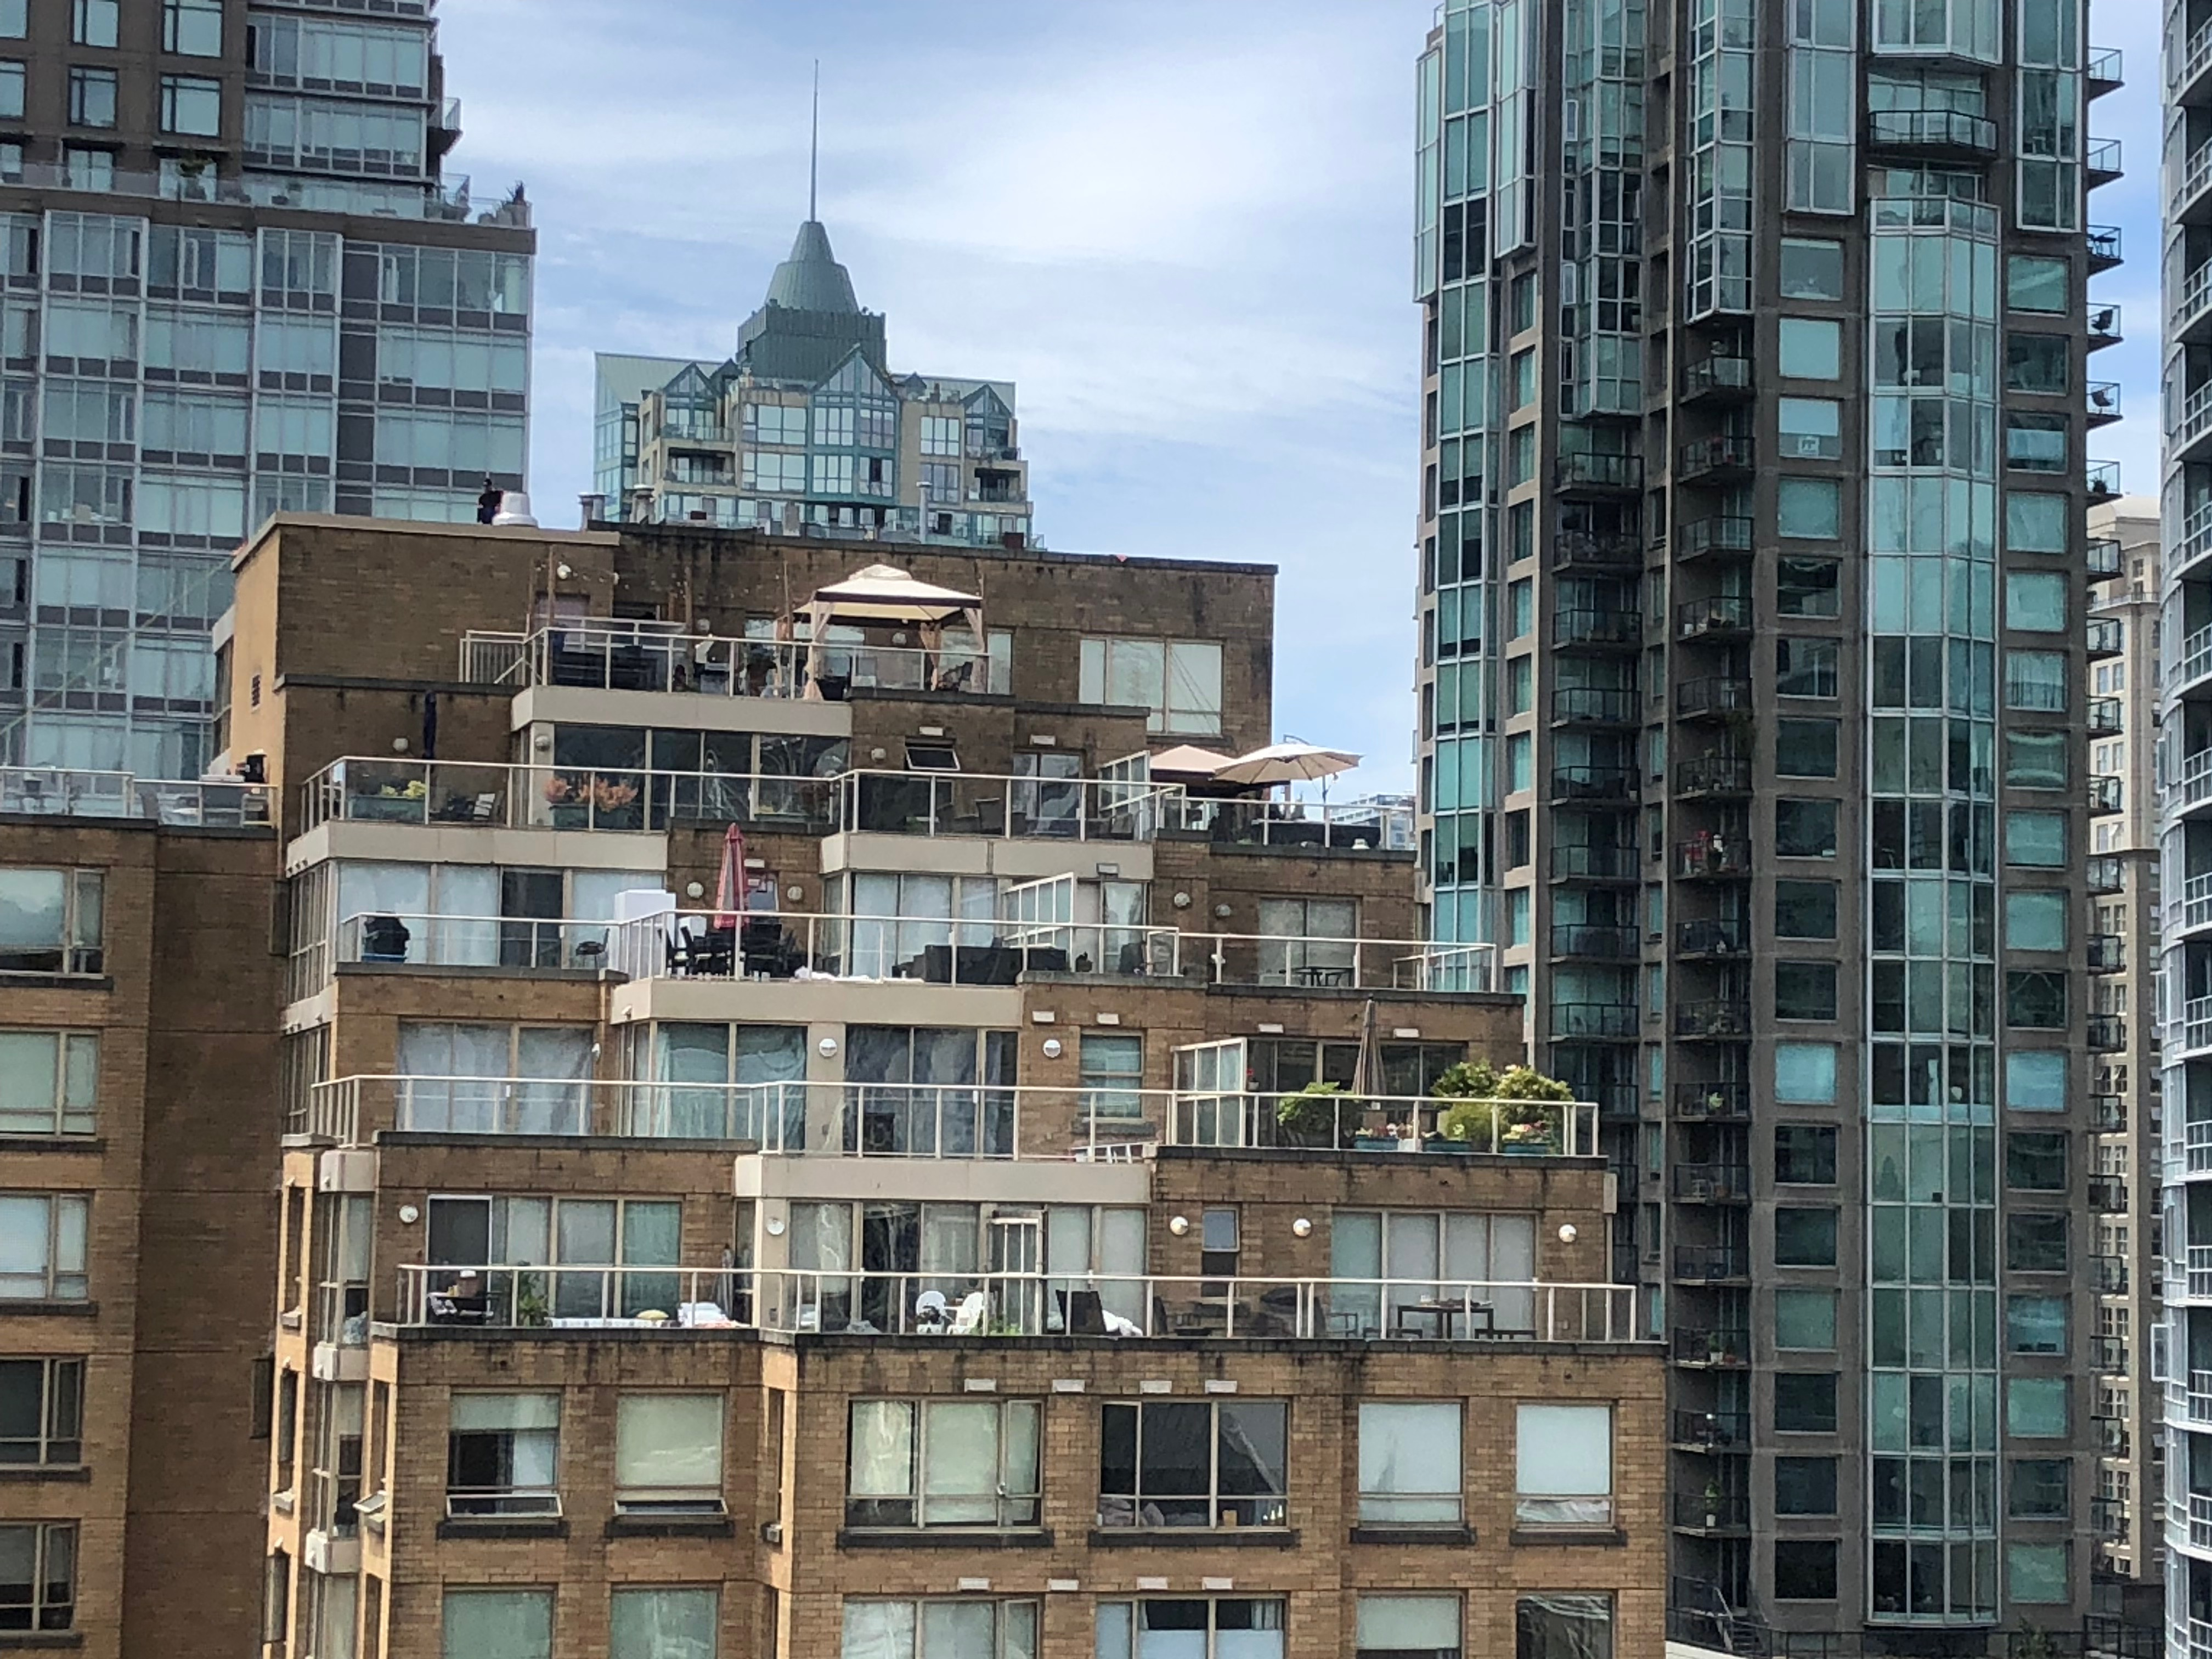 View from one perspective of the VPL rooftop garden. (Pic of close-by residential building with gardens and balconies on high stories.)